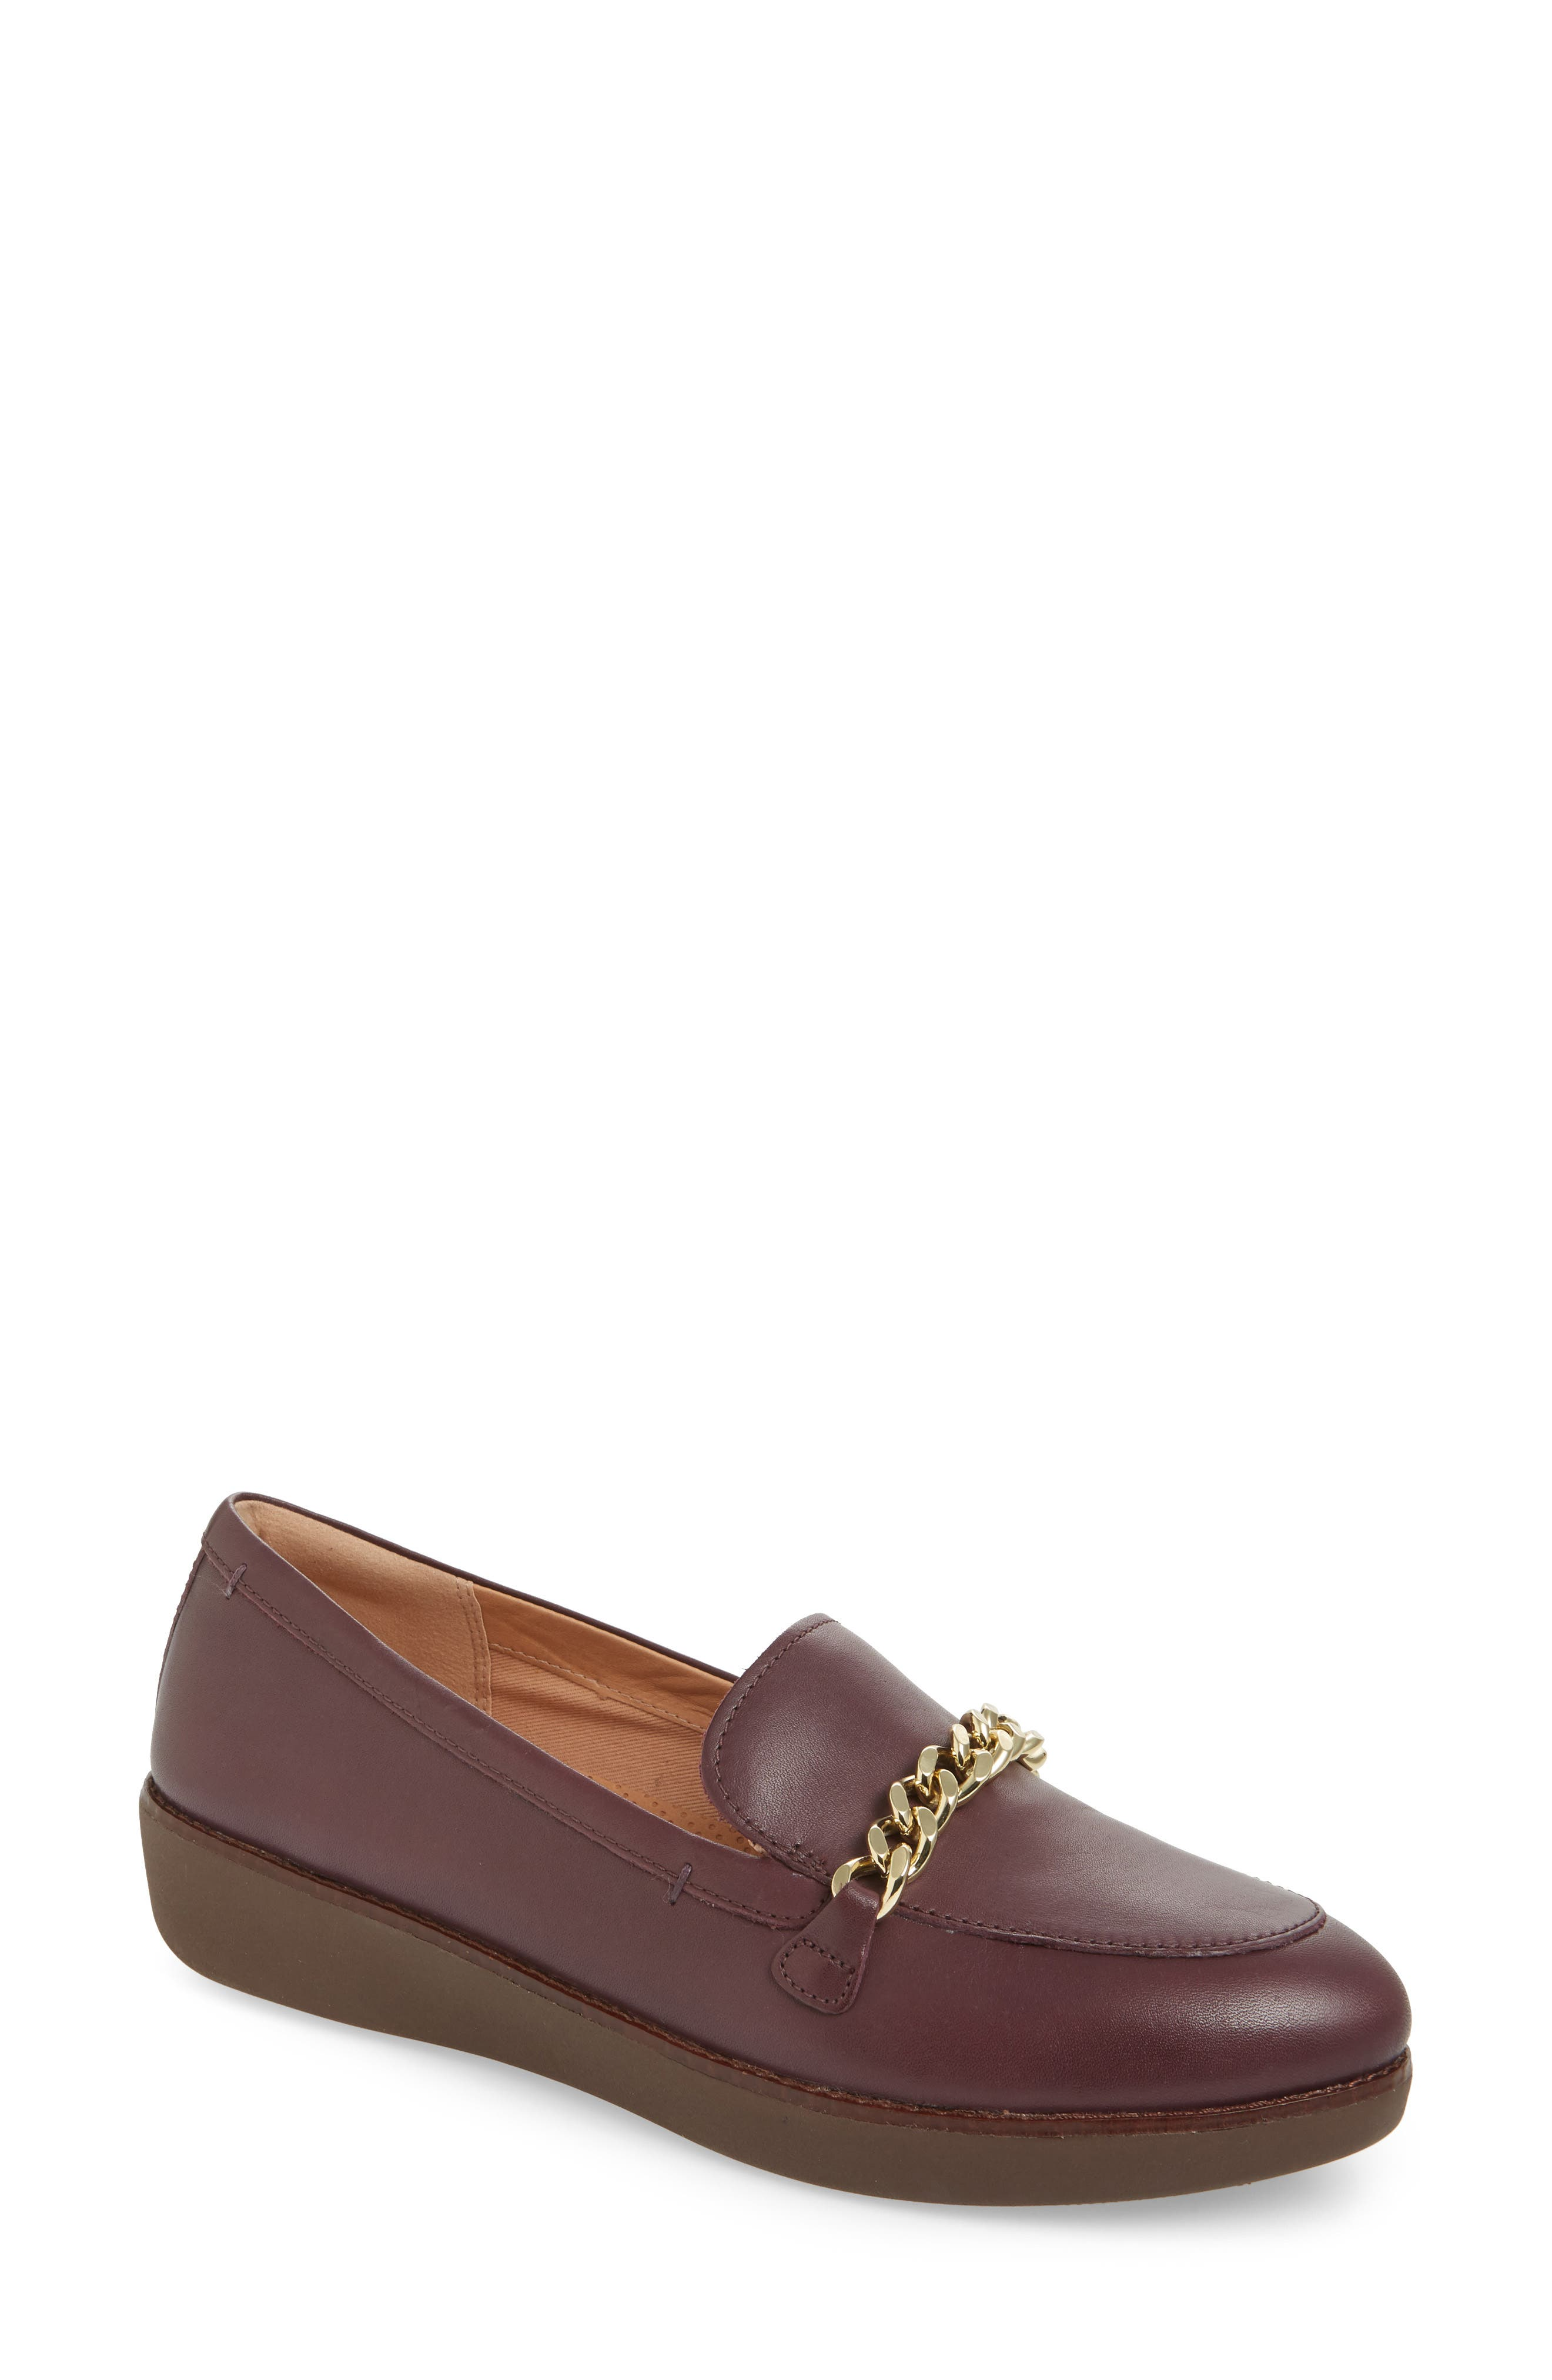 FITFLOP Petrina Chain Loafer, Main, color, 547